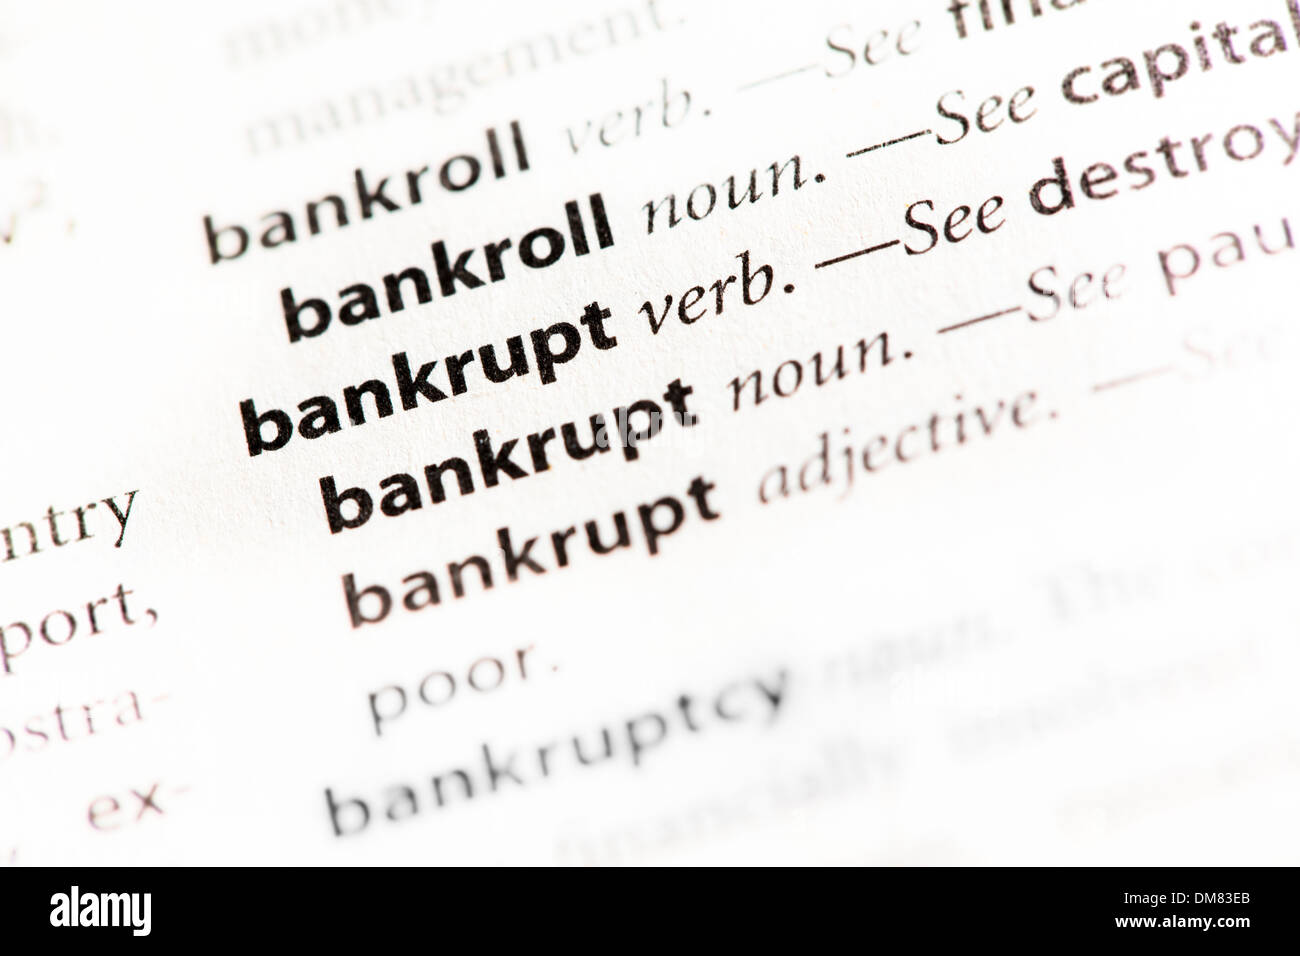 "bankrupt"" definition stock photo: 64102595 - alamy"